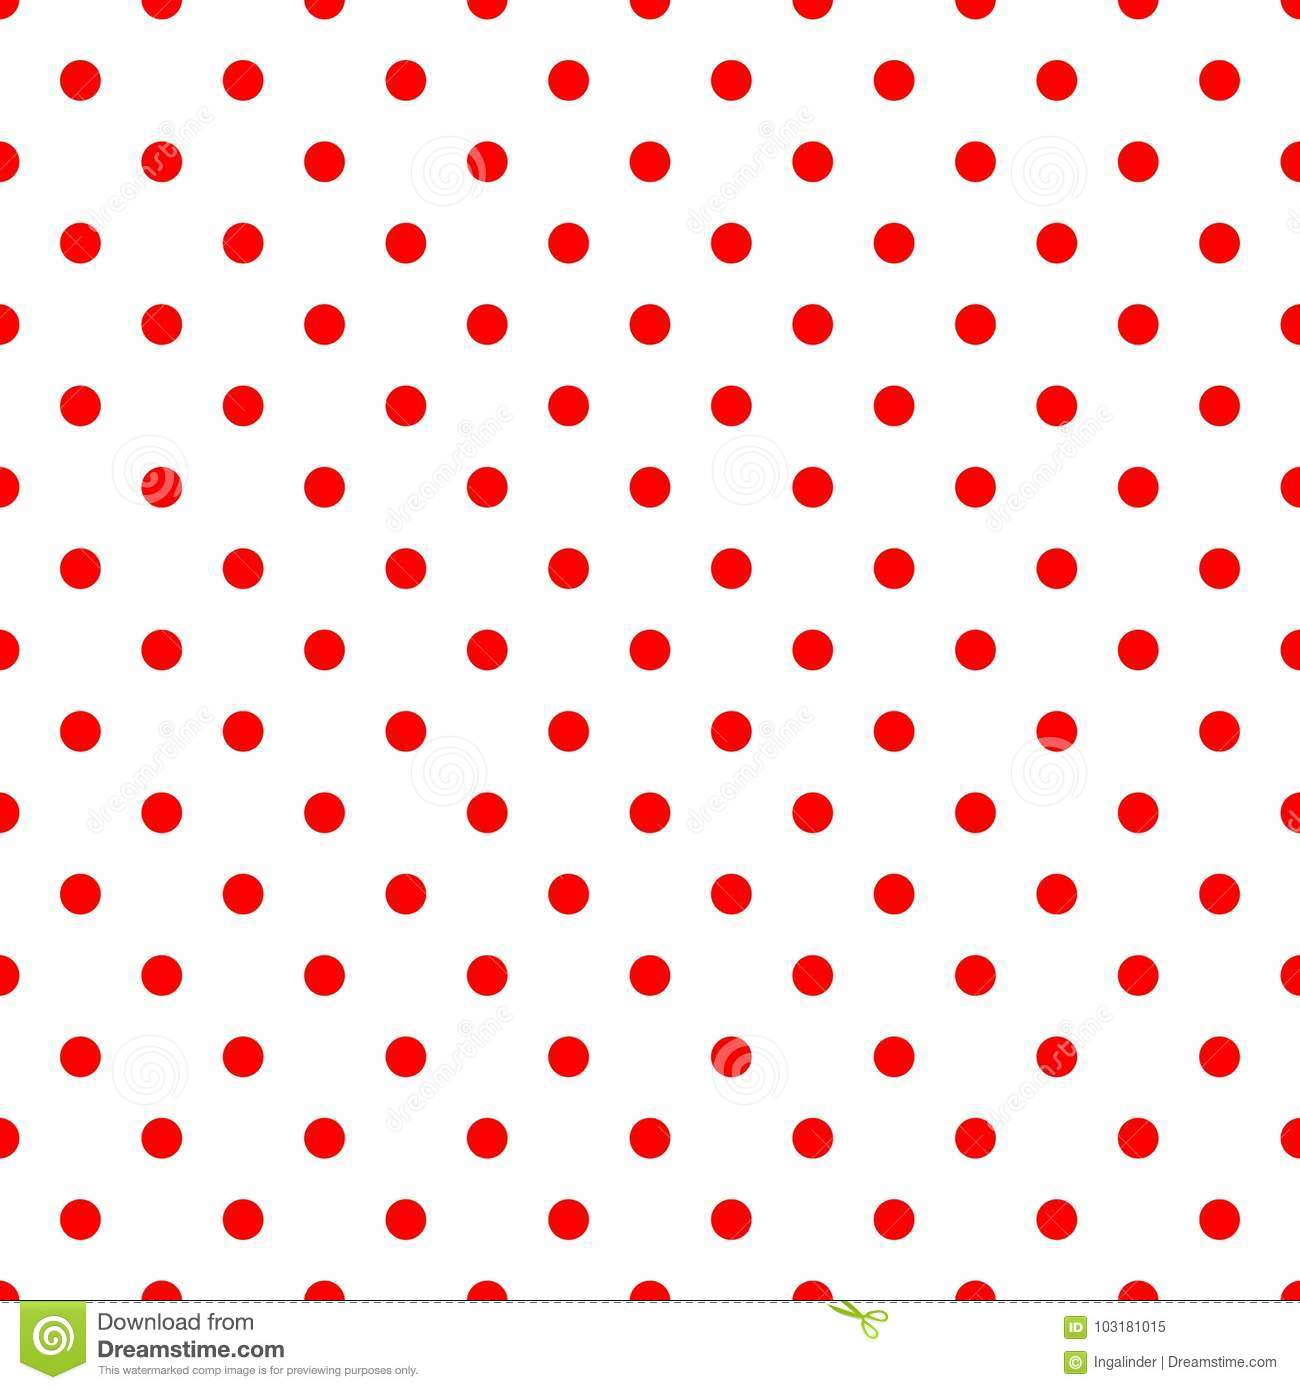 Tile Vector Pattern With Red Polka Dots On White Background